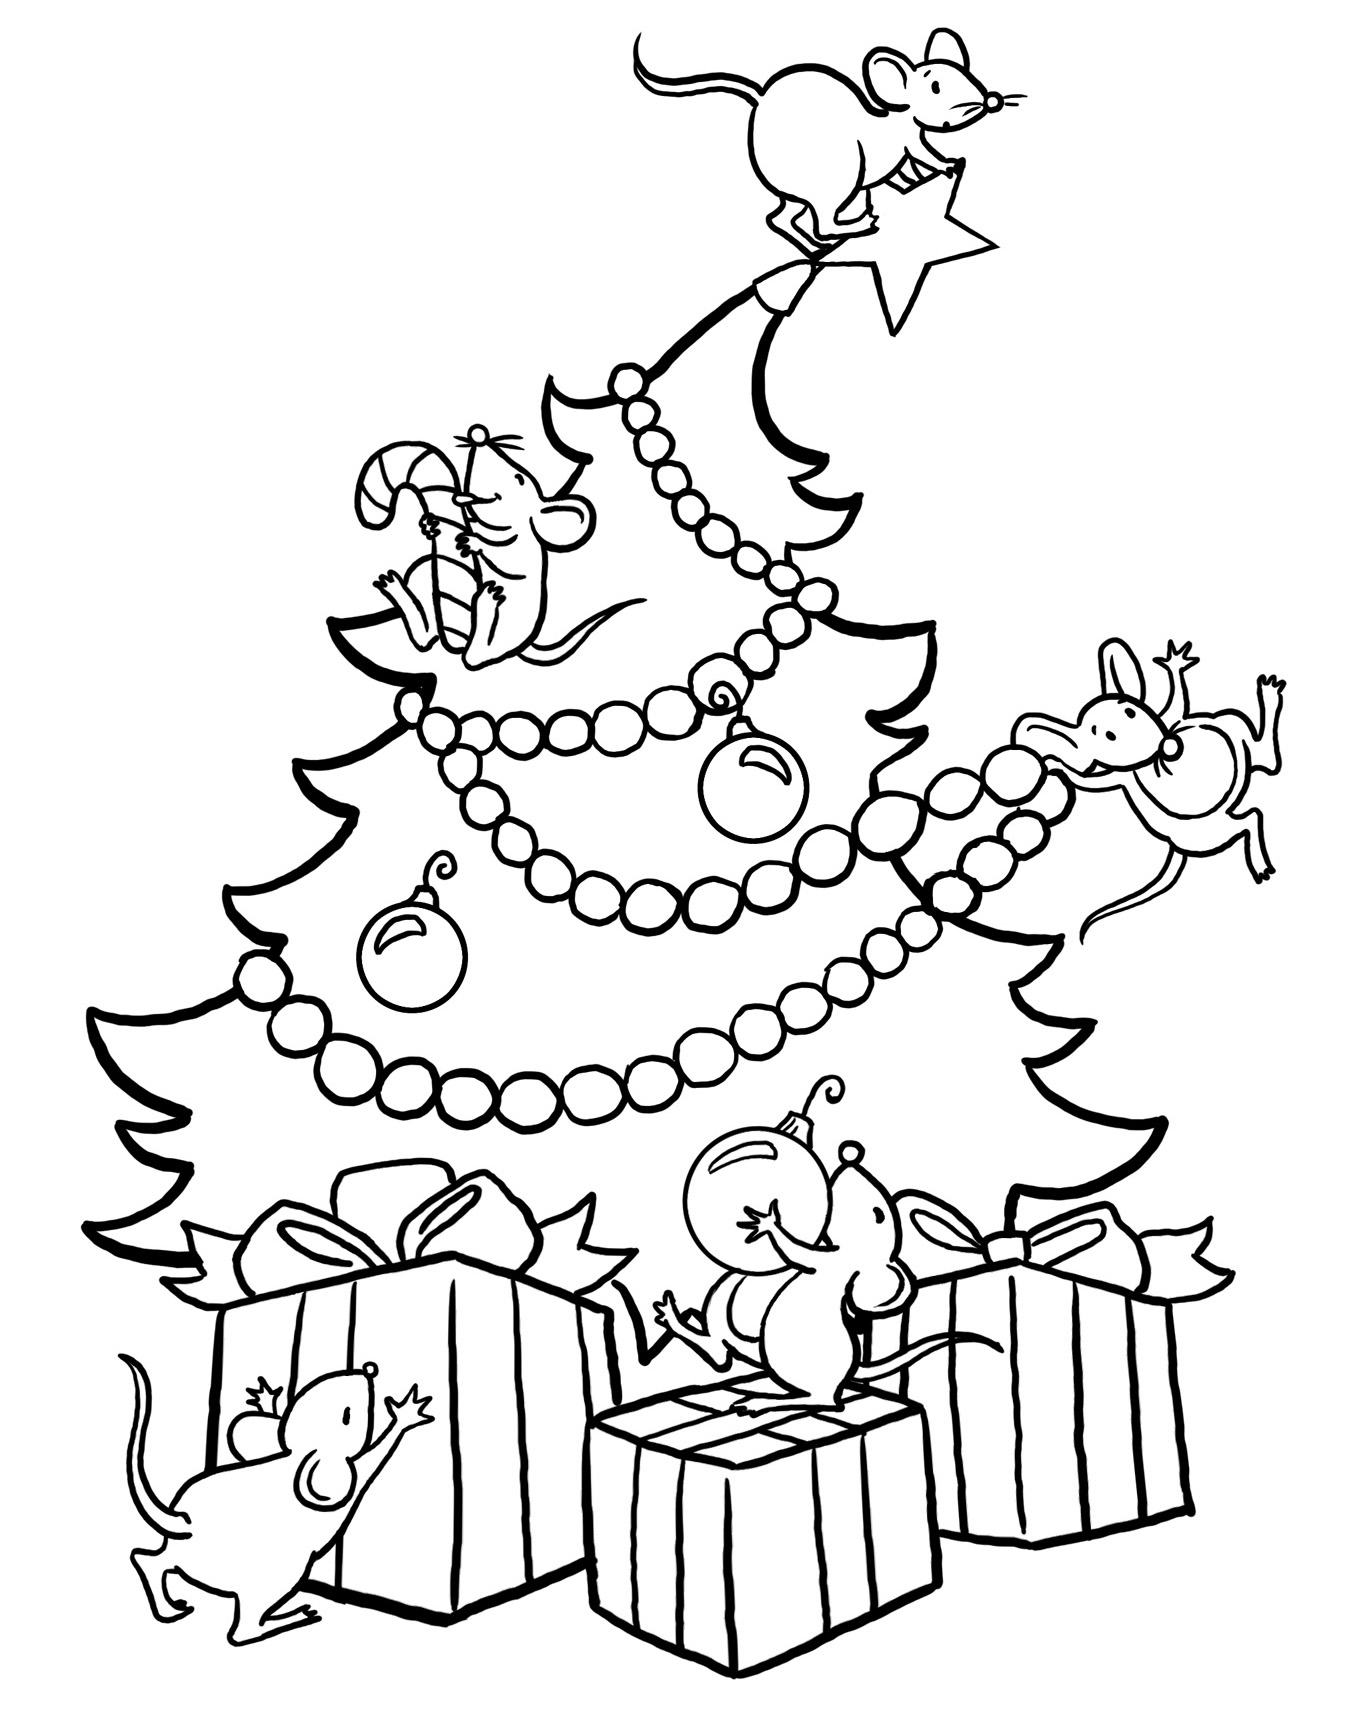 Main in addition Home 2015 coloring pages moreover Angry Birds Epic Coloring Pages besides Datafactz additionally 2010 09 01 archive. on jim the pig